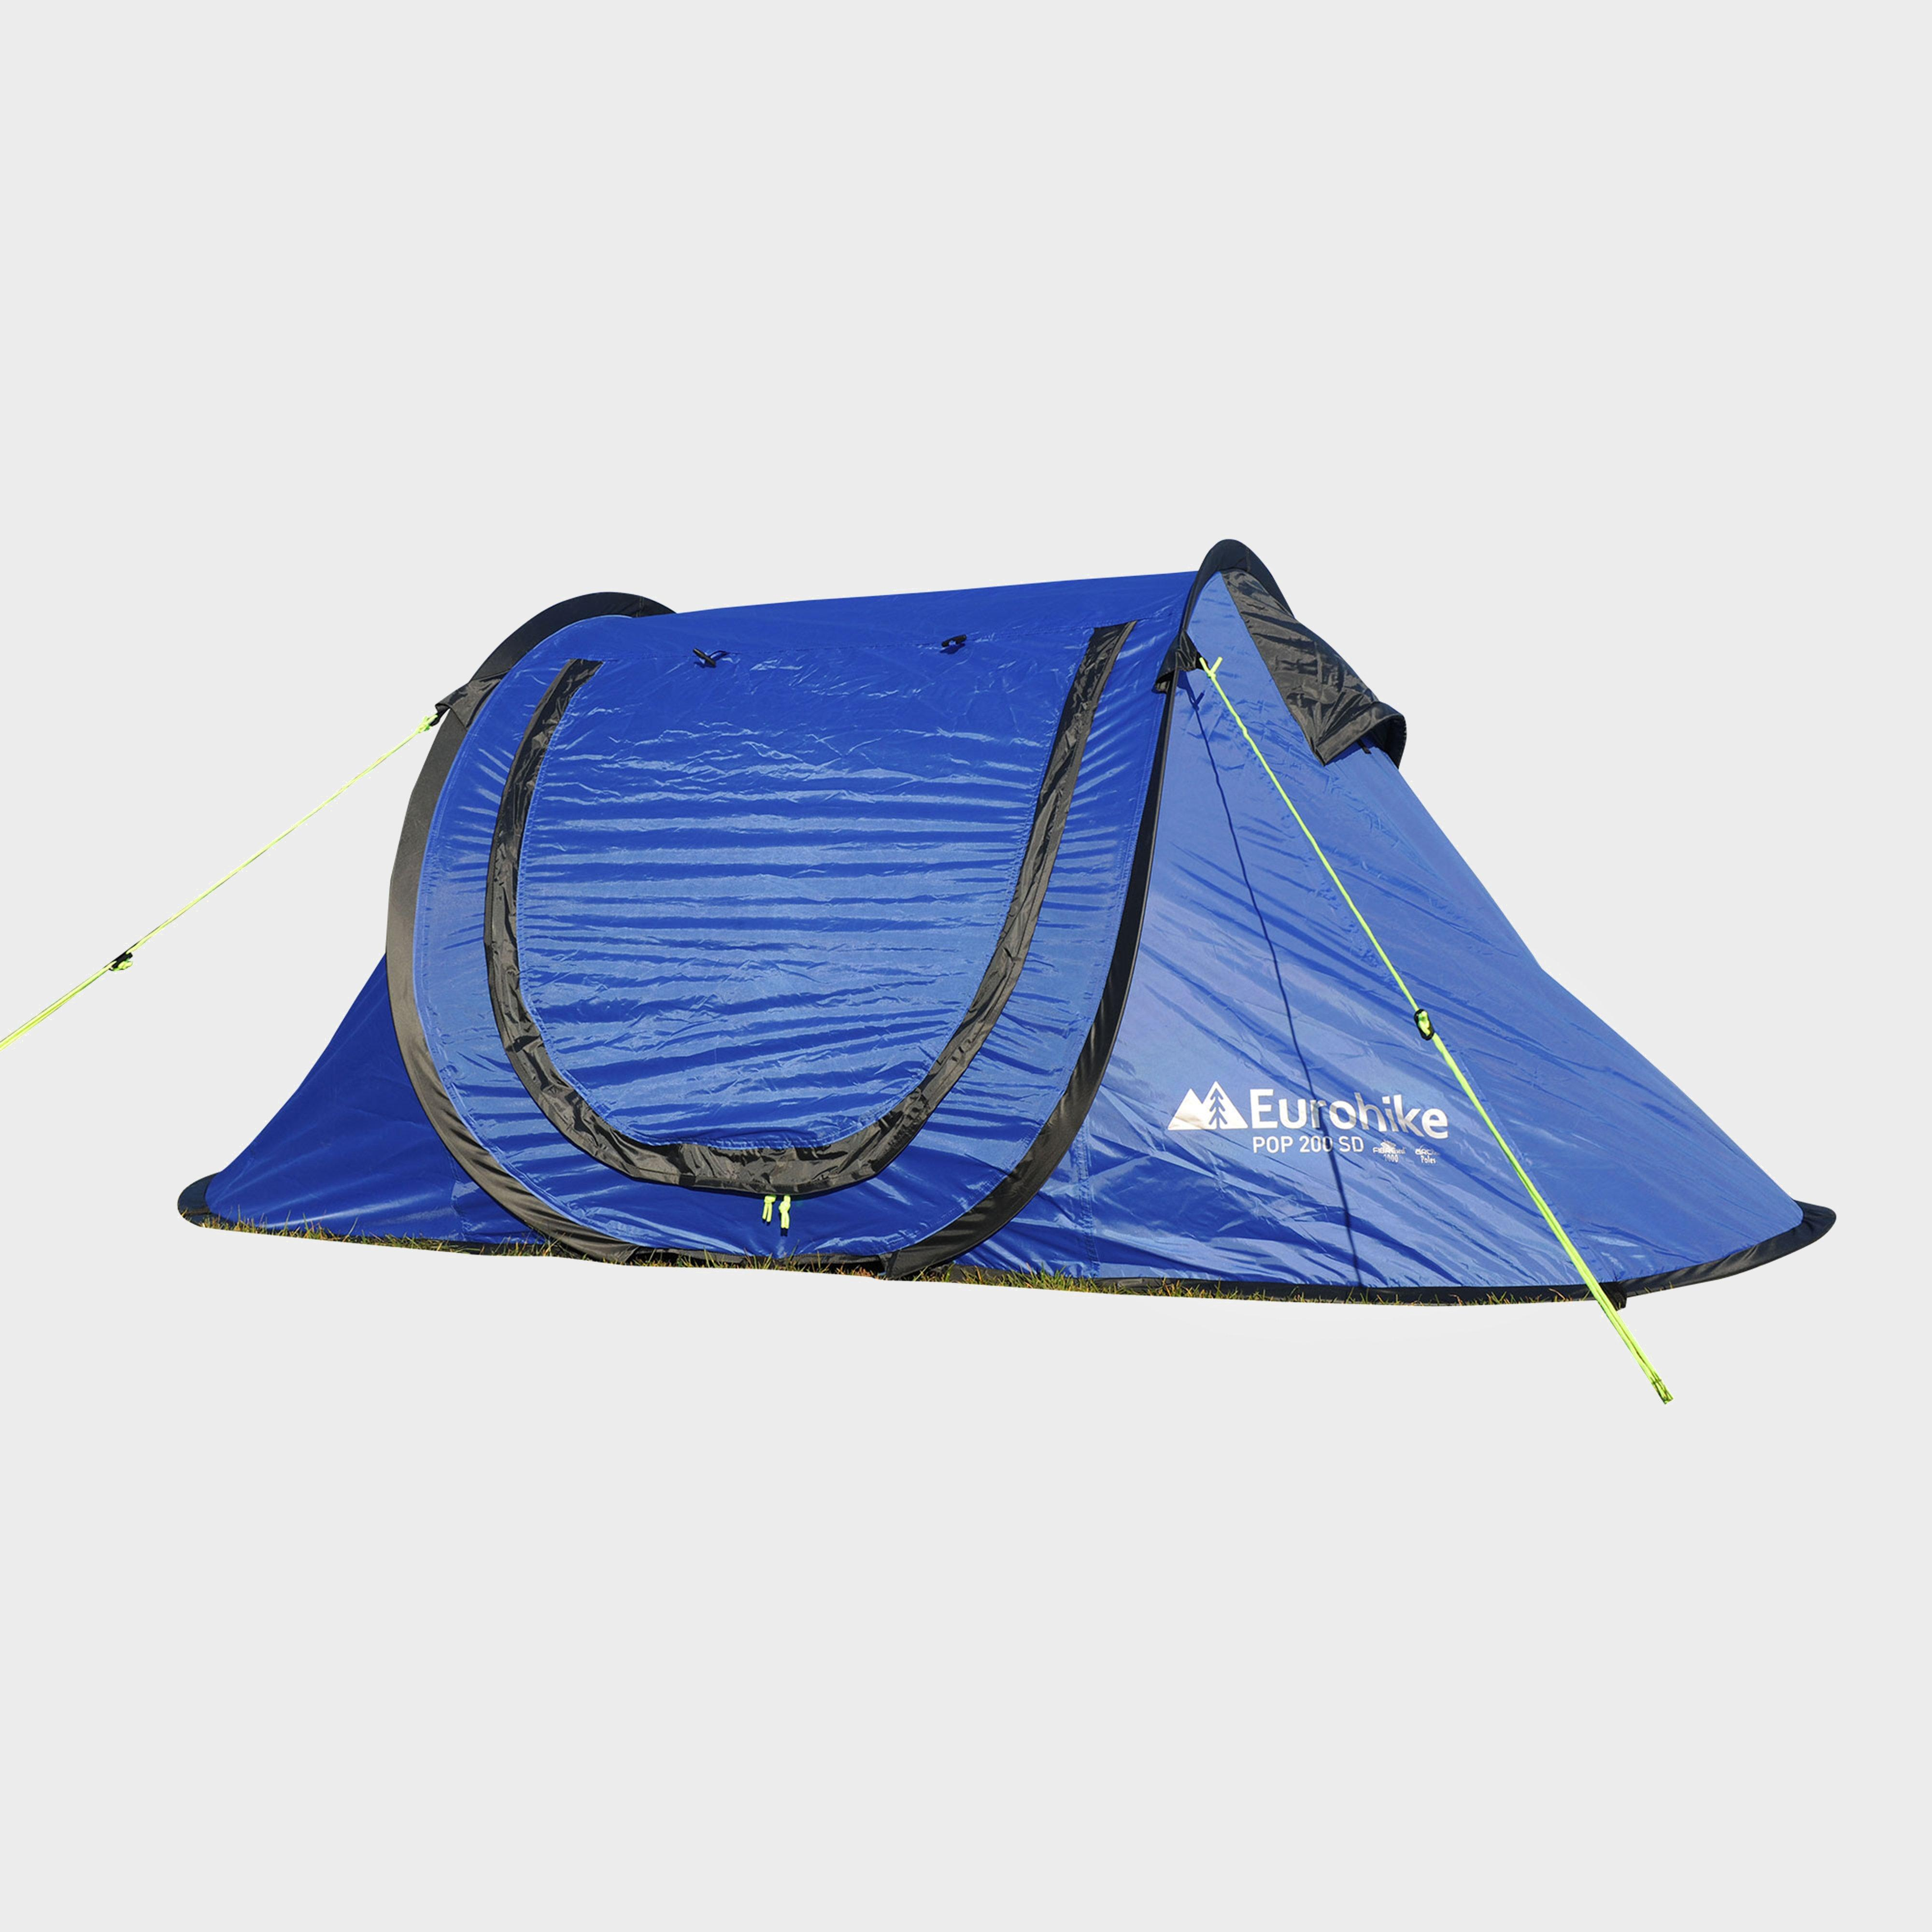 EUROHIKE Pop 200 2 Person Tent & Tents | Family Backpacking u0026 Camping Tents | Blacks